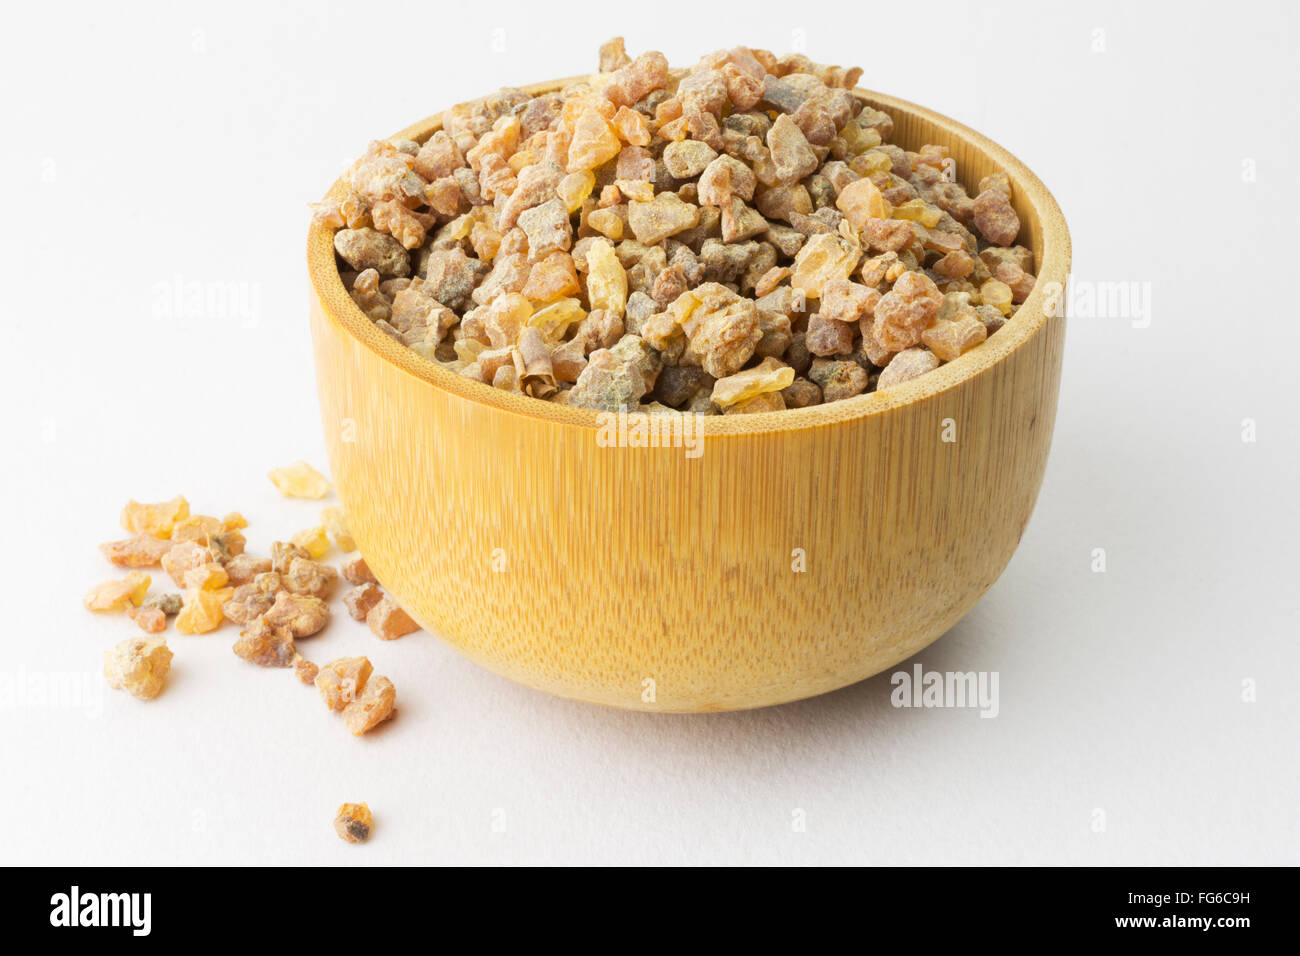 Myrrh in Wooden Bowl Stock Photo